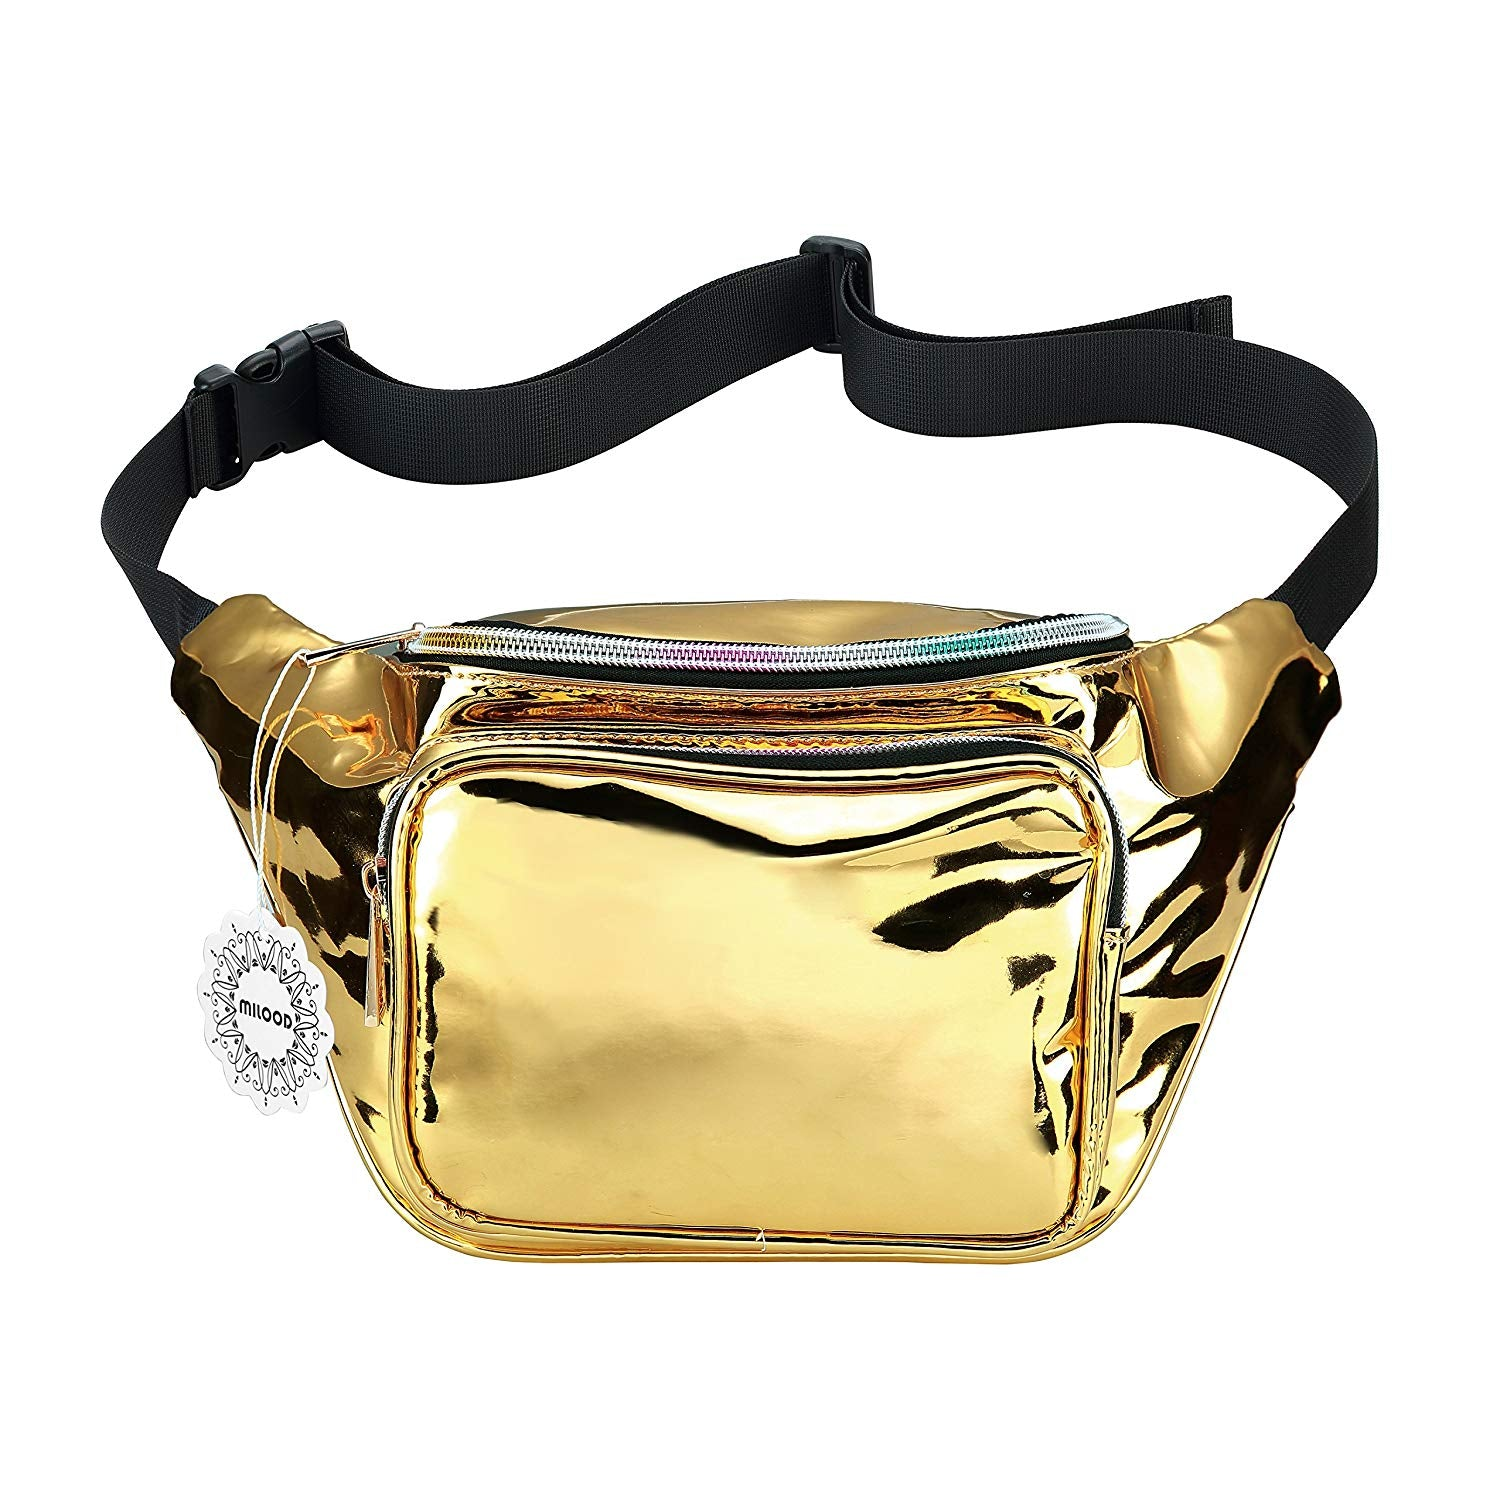 fb2dc27bfdbe Womens Shiny Neon Fanny Pack Bag - Great for Rave Festival Hologram ...